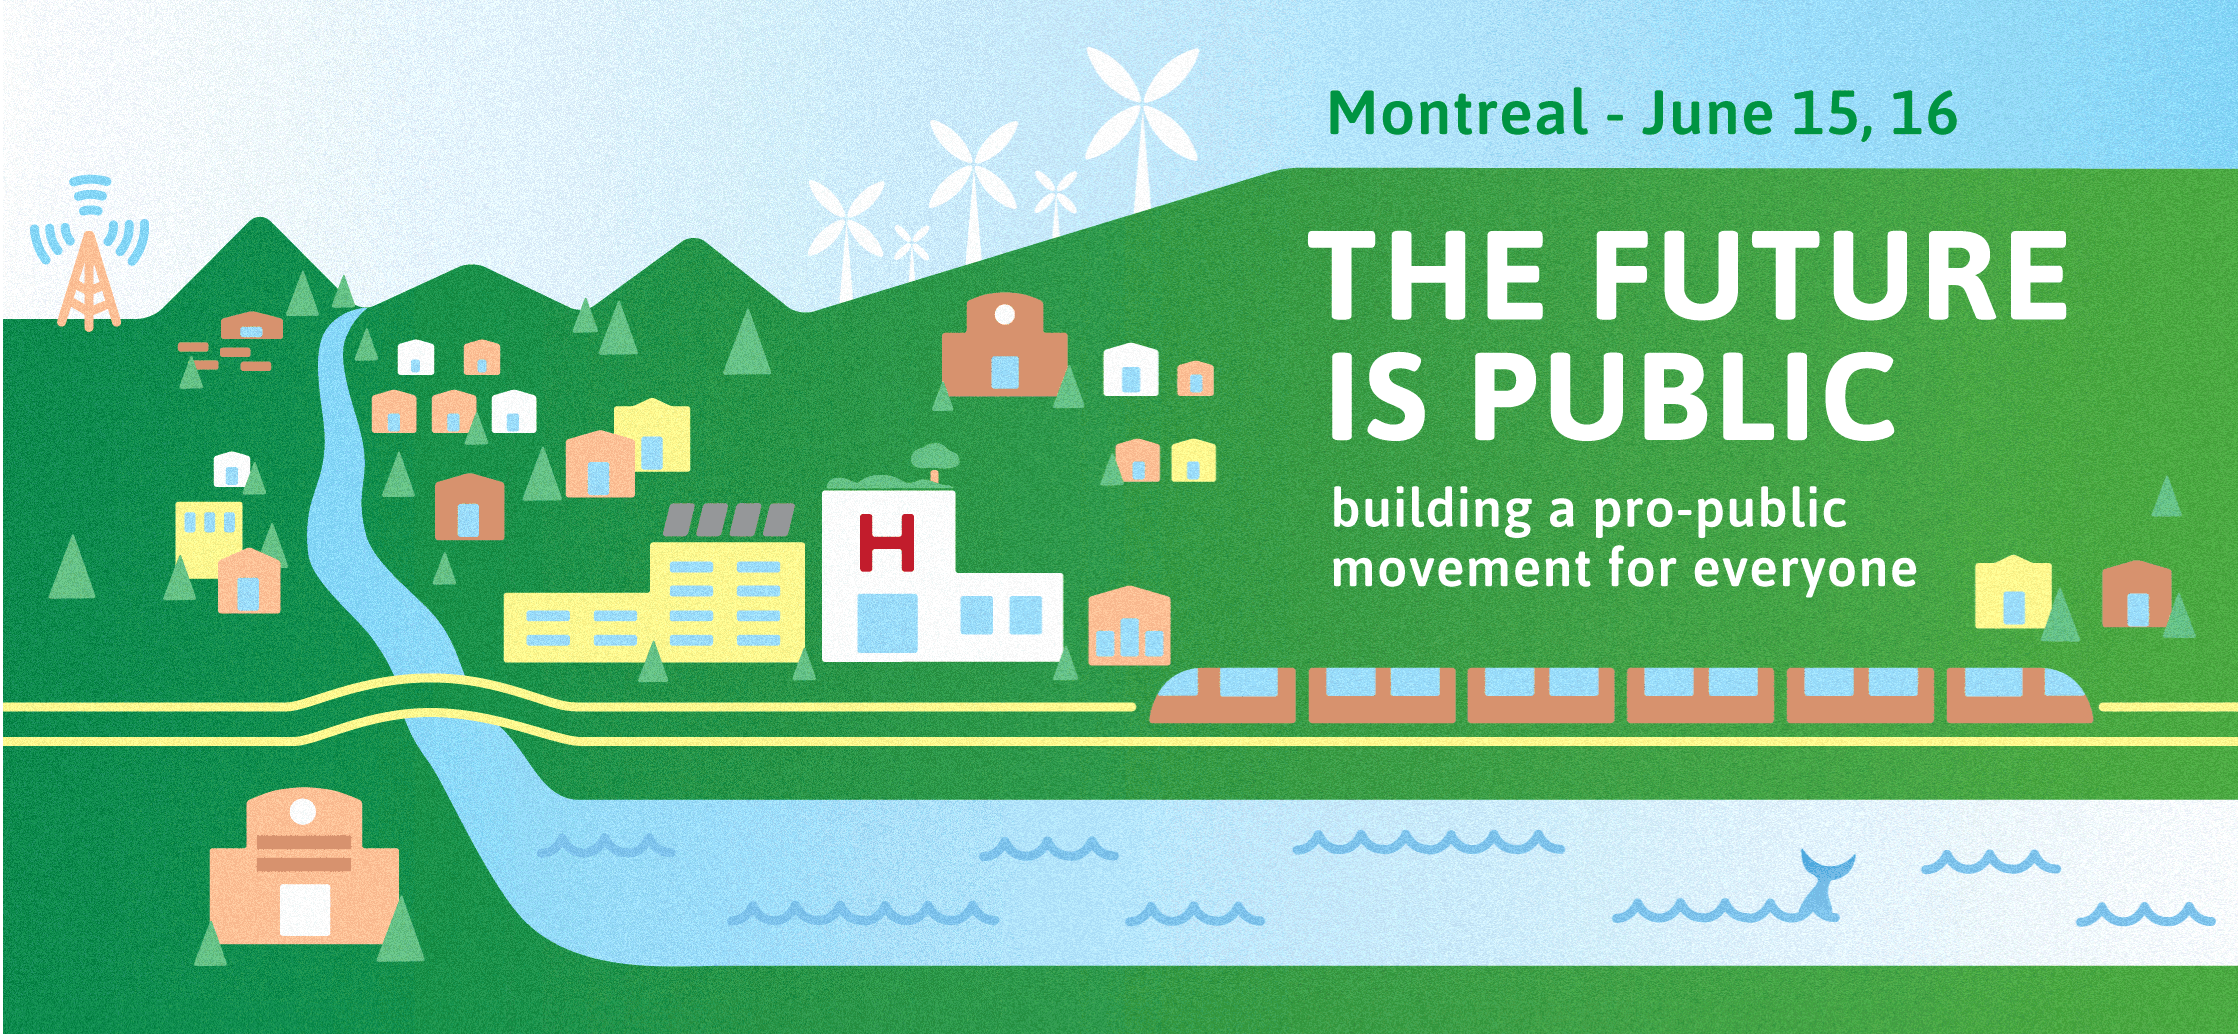 cover image: The Future is Public: building a pro-public movement for all - Montreal, June 15-16